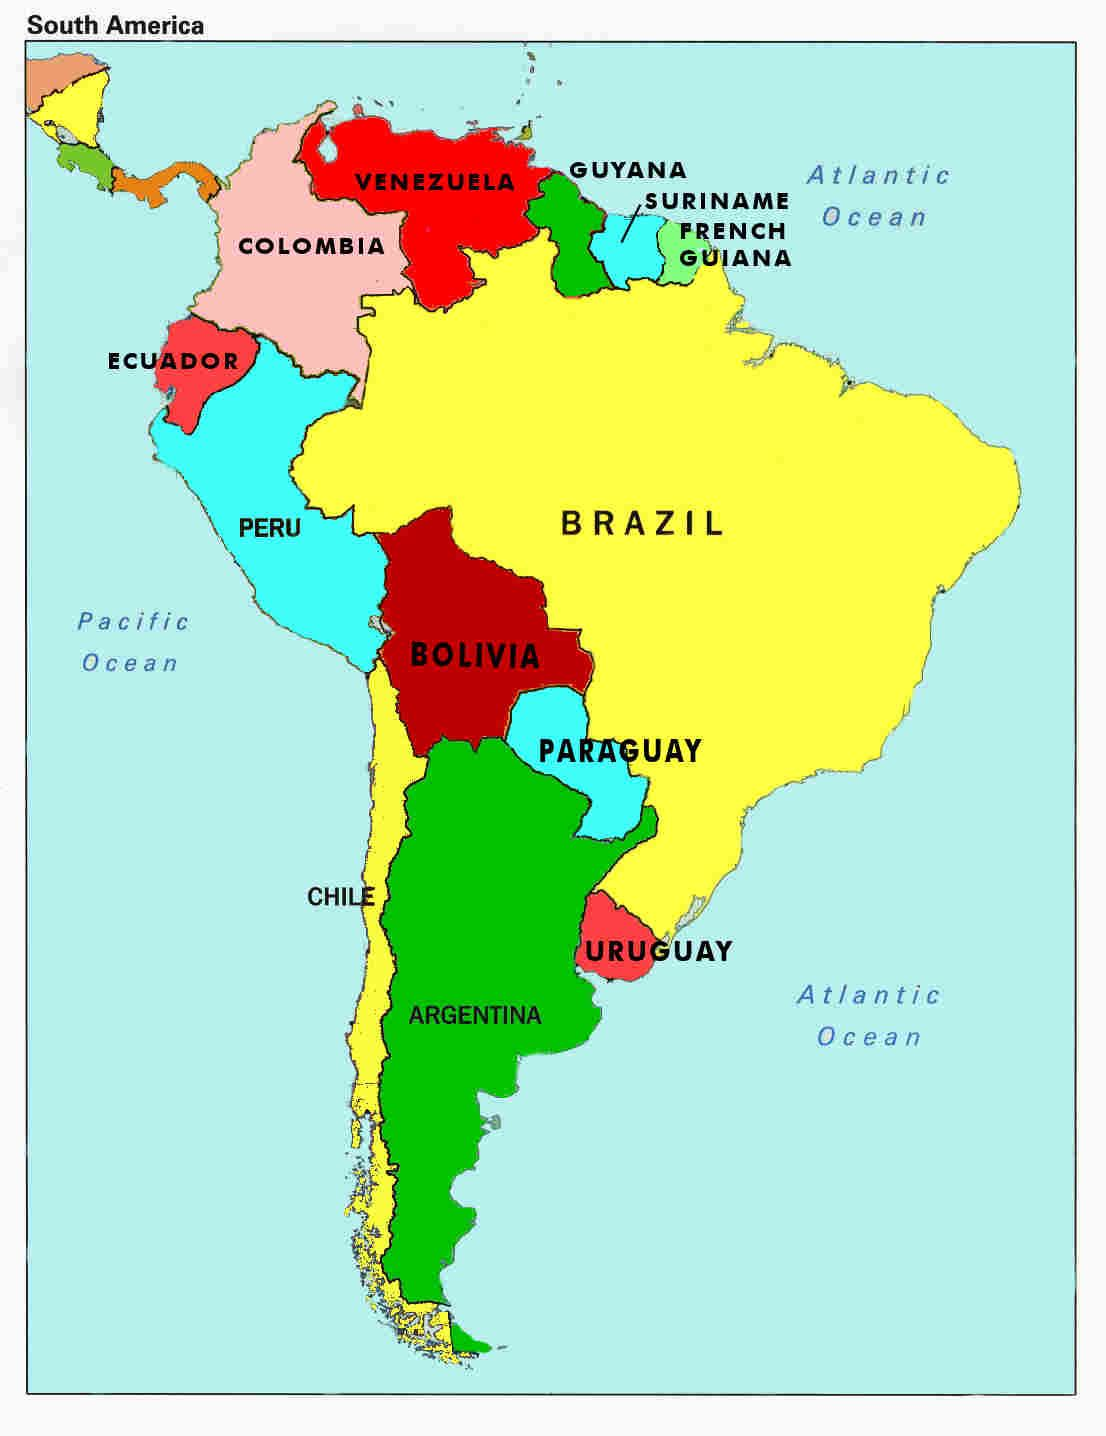 South America Map No Names.Map Of South America Countries And Capitals Map Of South America